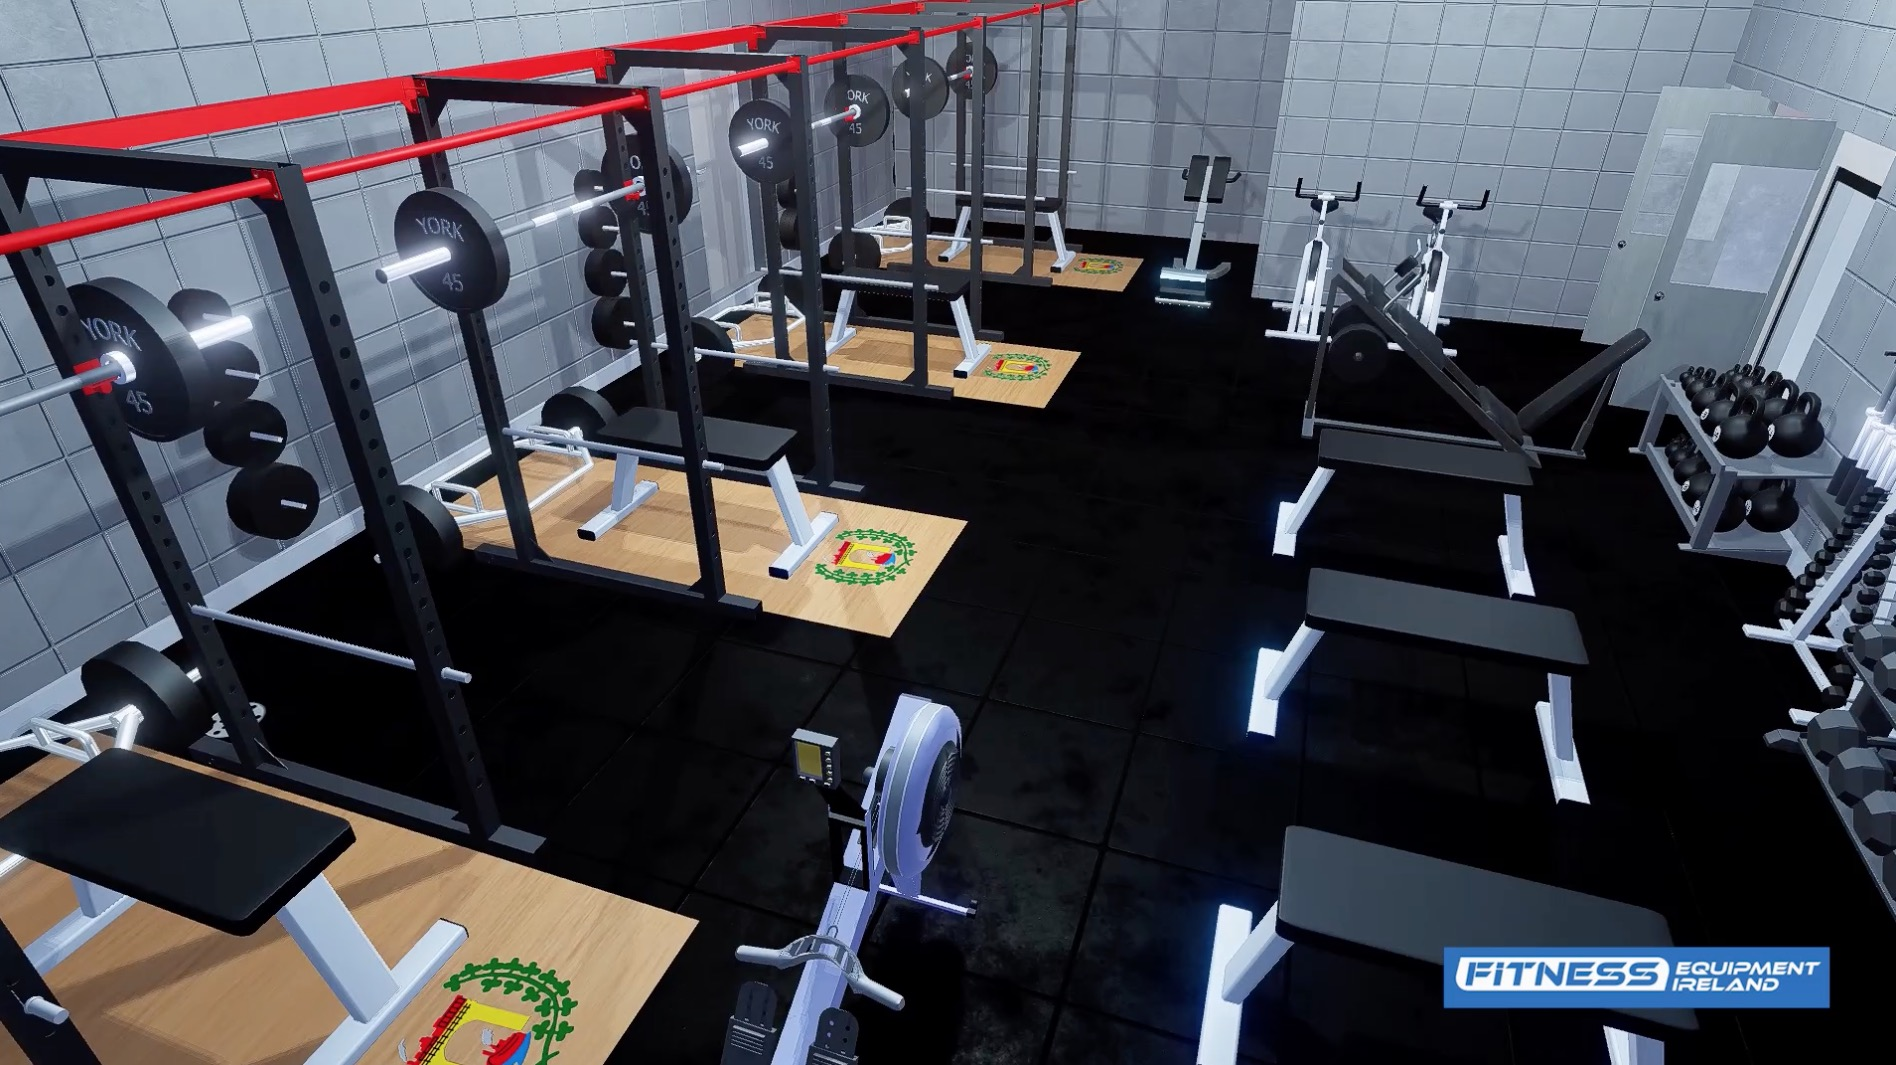 3d gym design fitness equipment ireland best for for Gym designs and layout